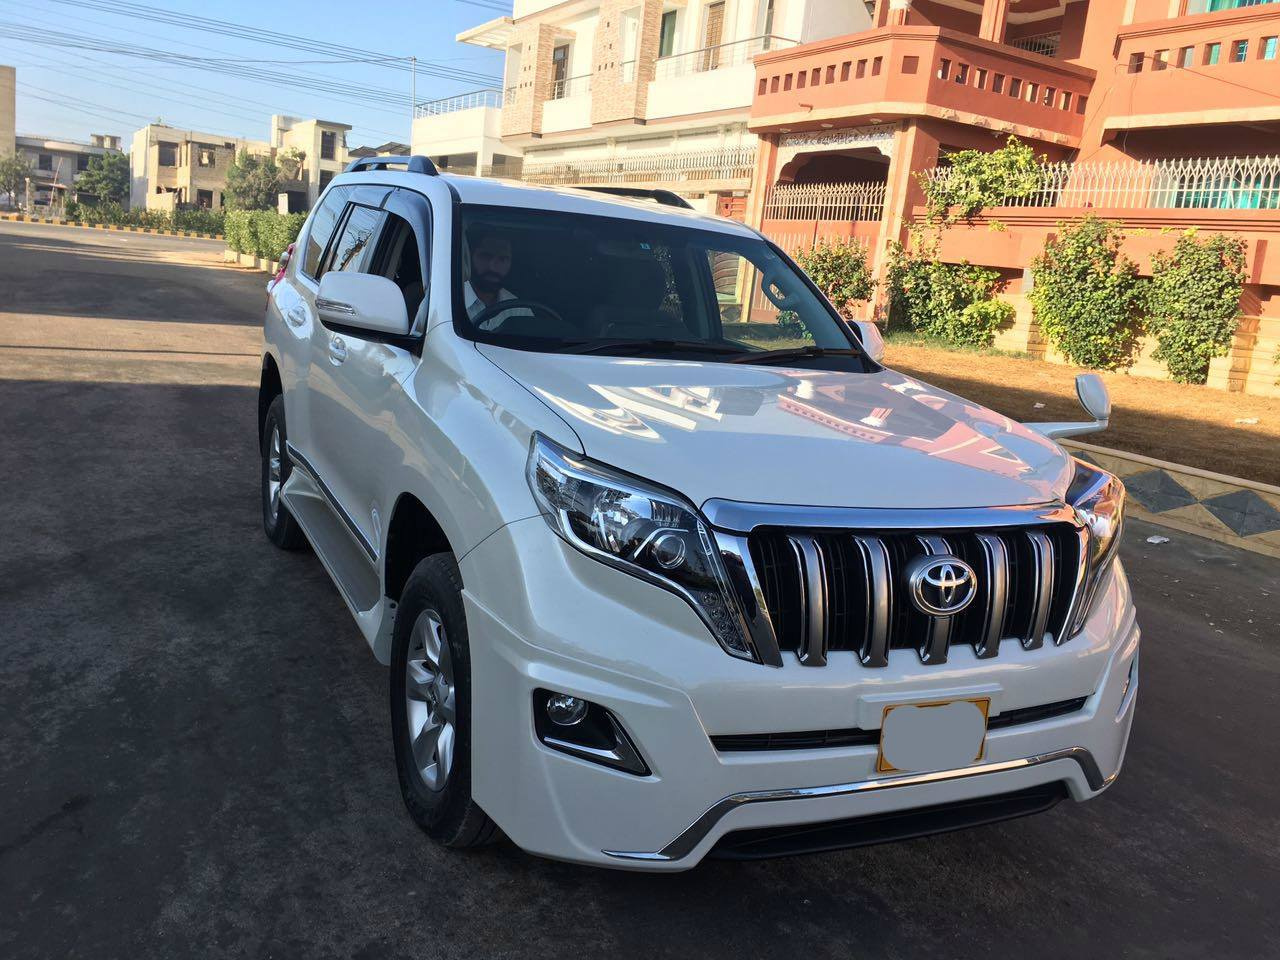 Rent a car service in defence karachi